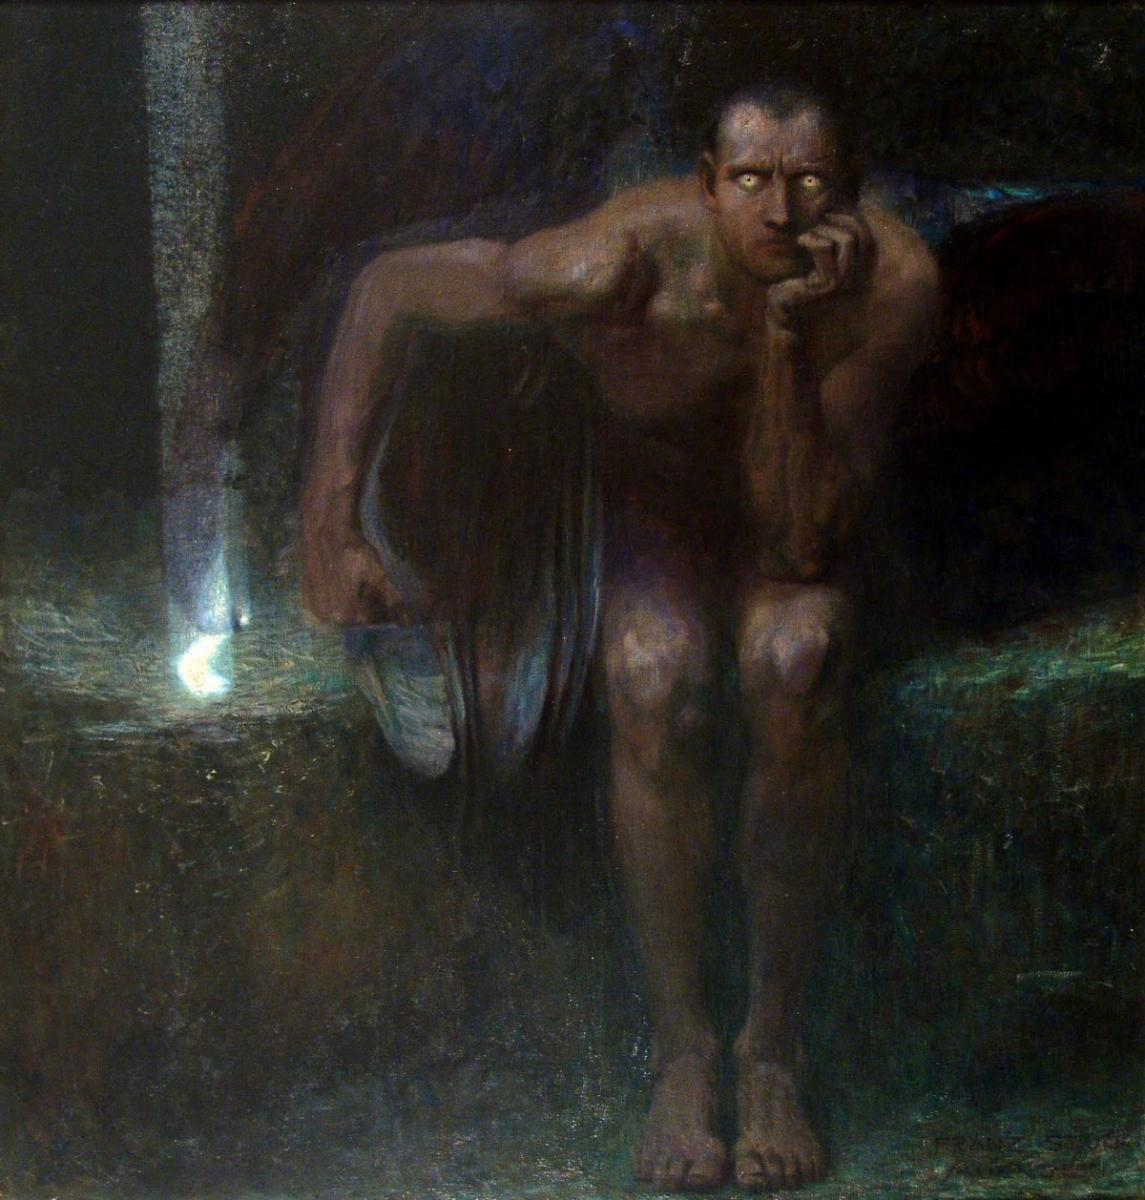 Lucifer, by Franz Von Stuck